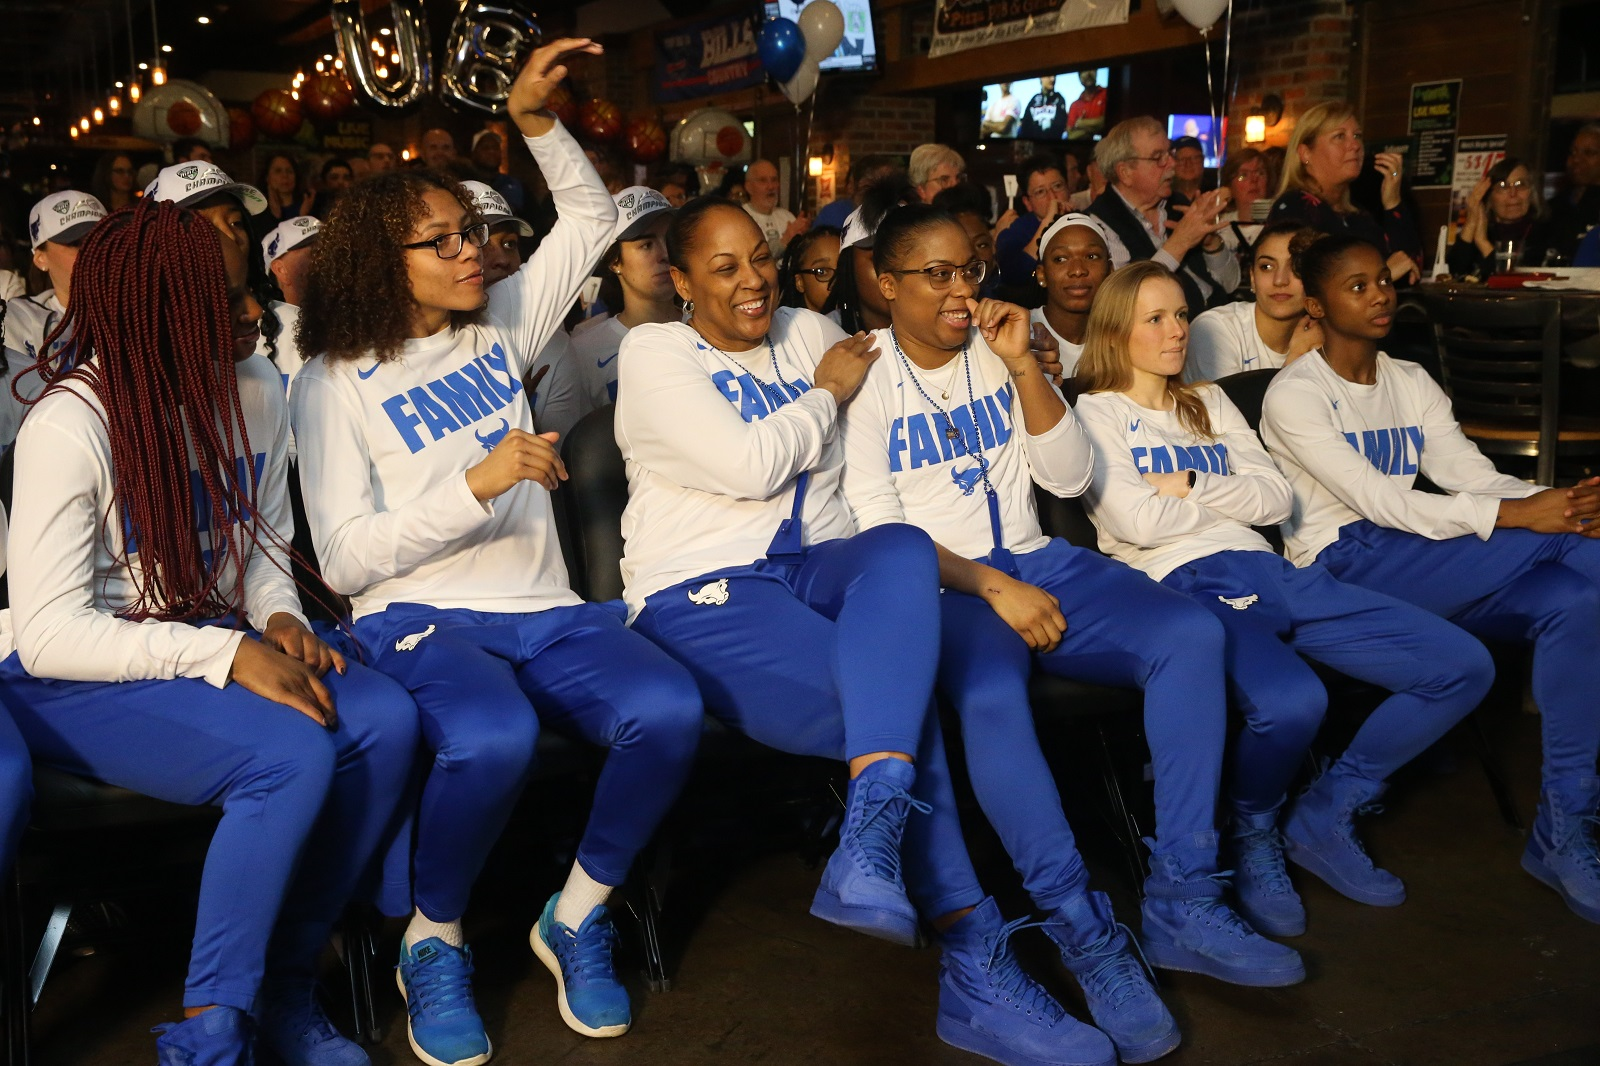 TV trips all over UB womens trip to NCAA Tournament